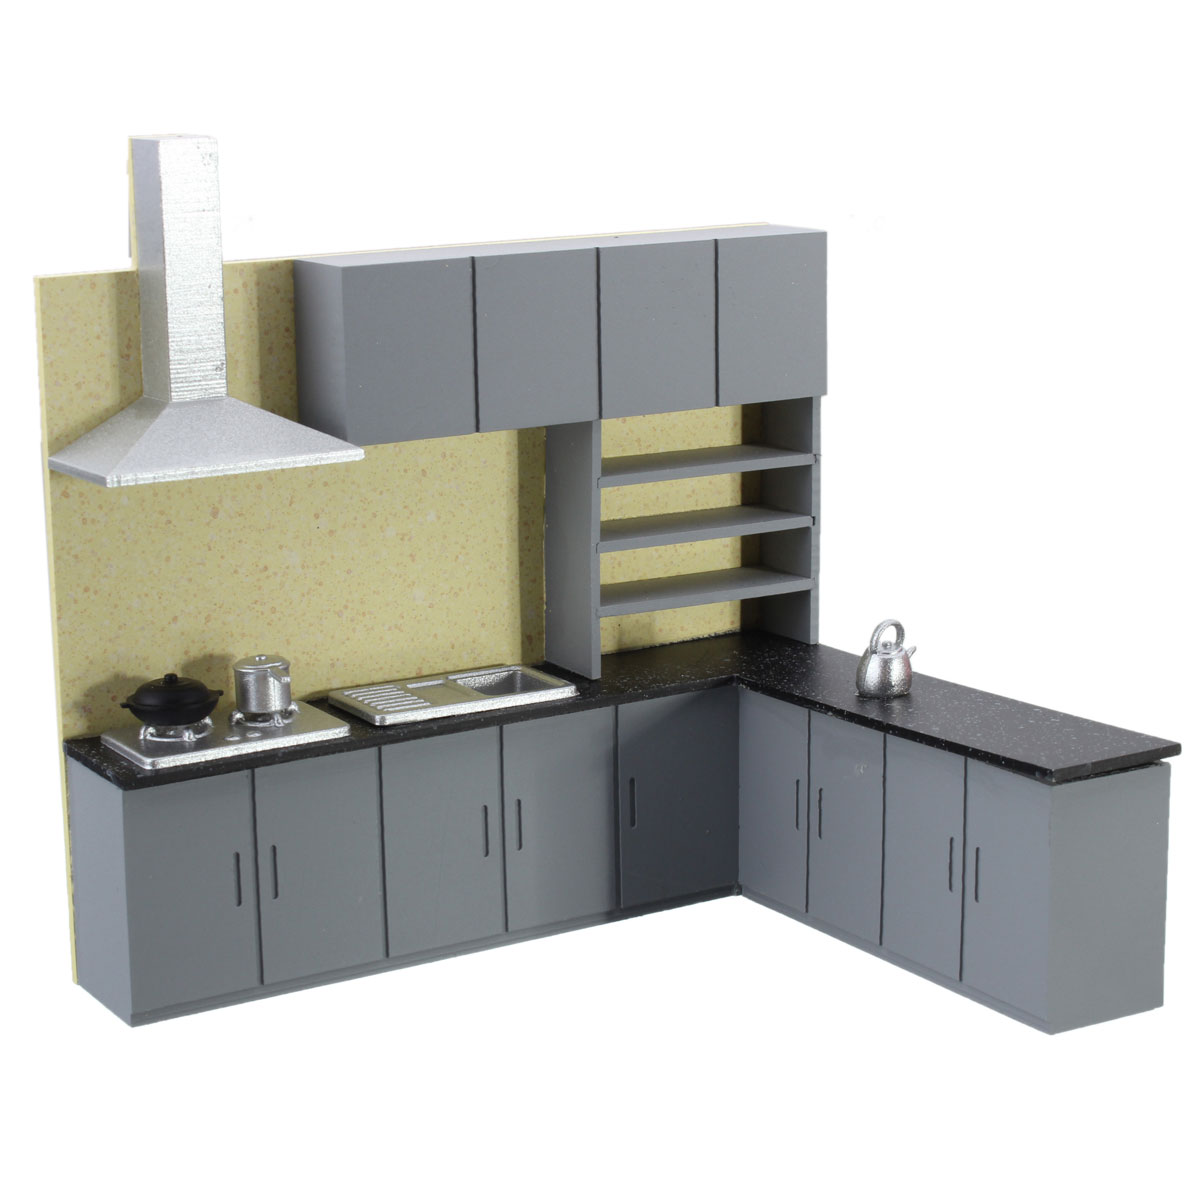 Dollhouse Art Modern Simulation Kitchen Cabinet Set Model